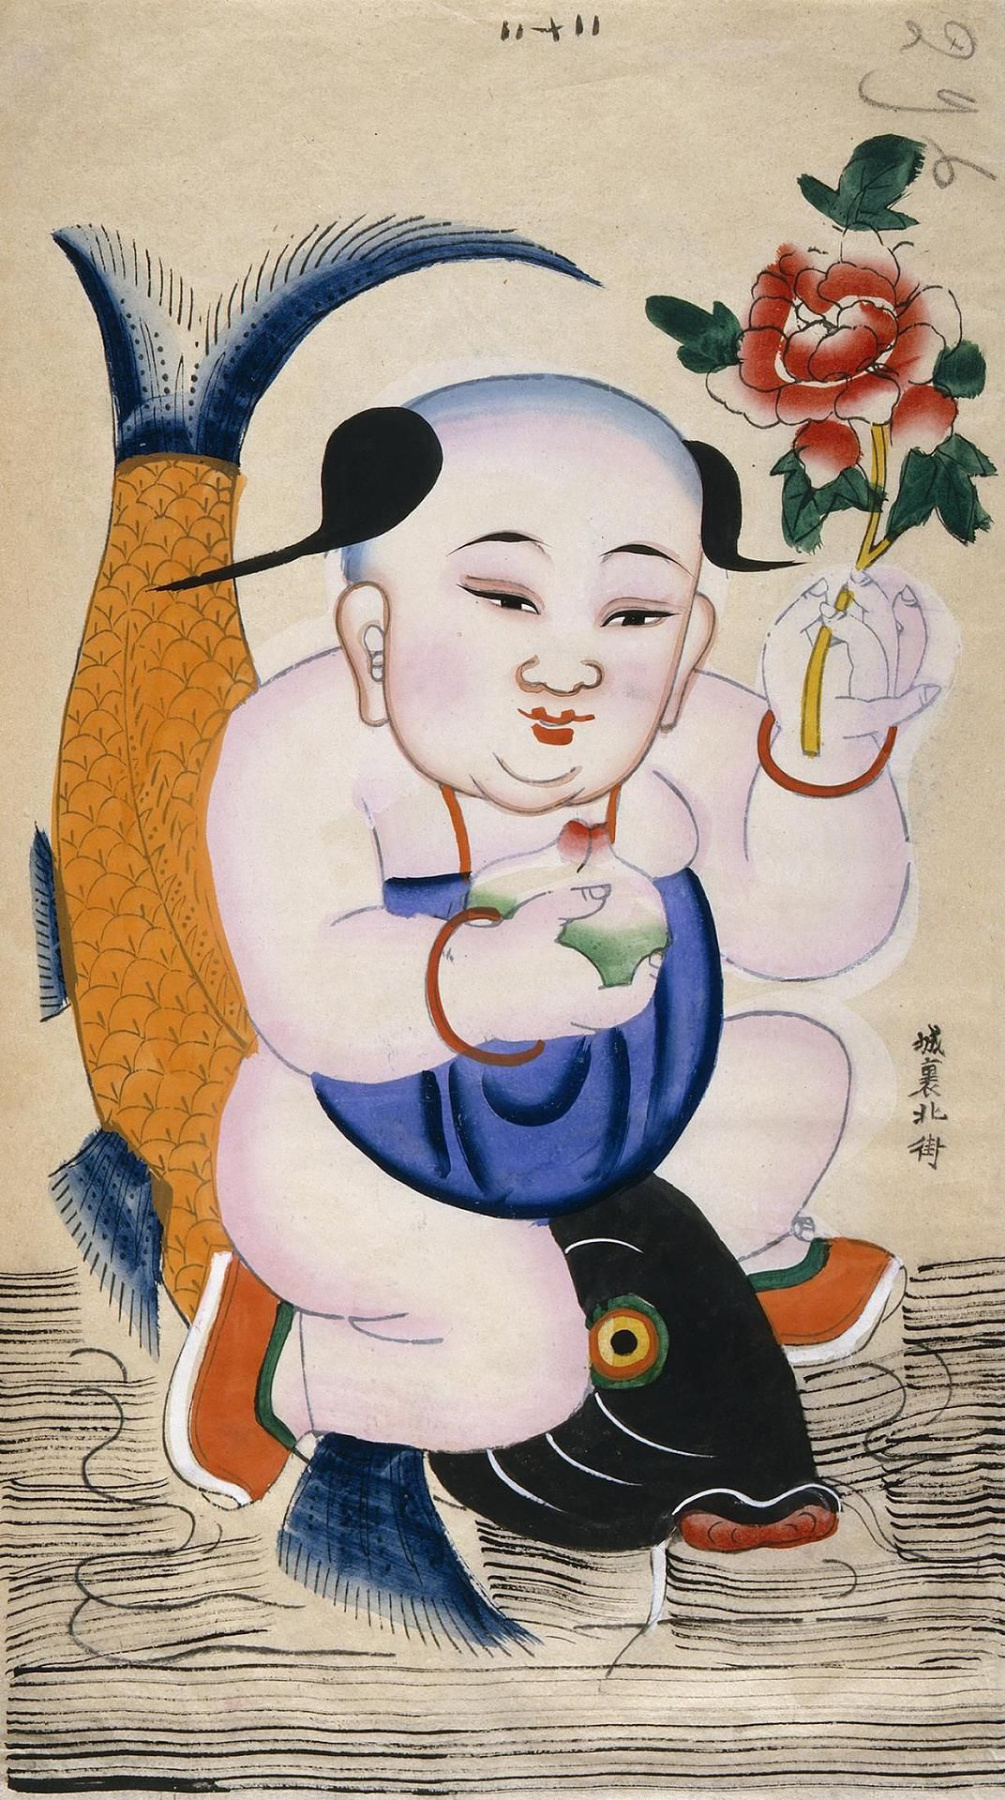 Unknown artist. Boy with peony in left hand, seated on a carp (China, late XIX - early XX centuries).